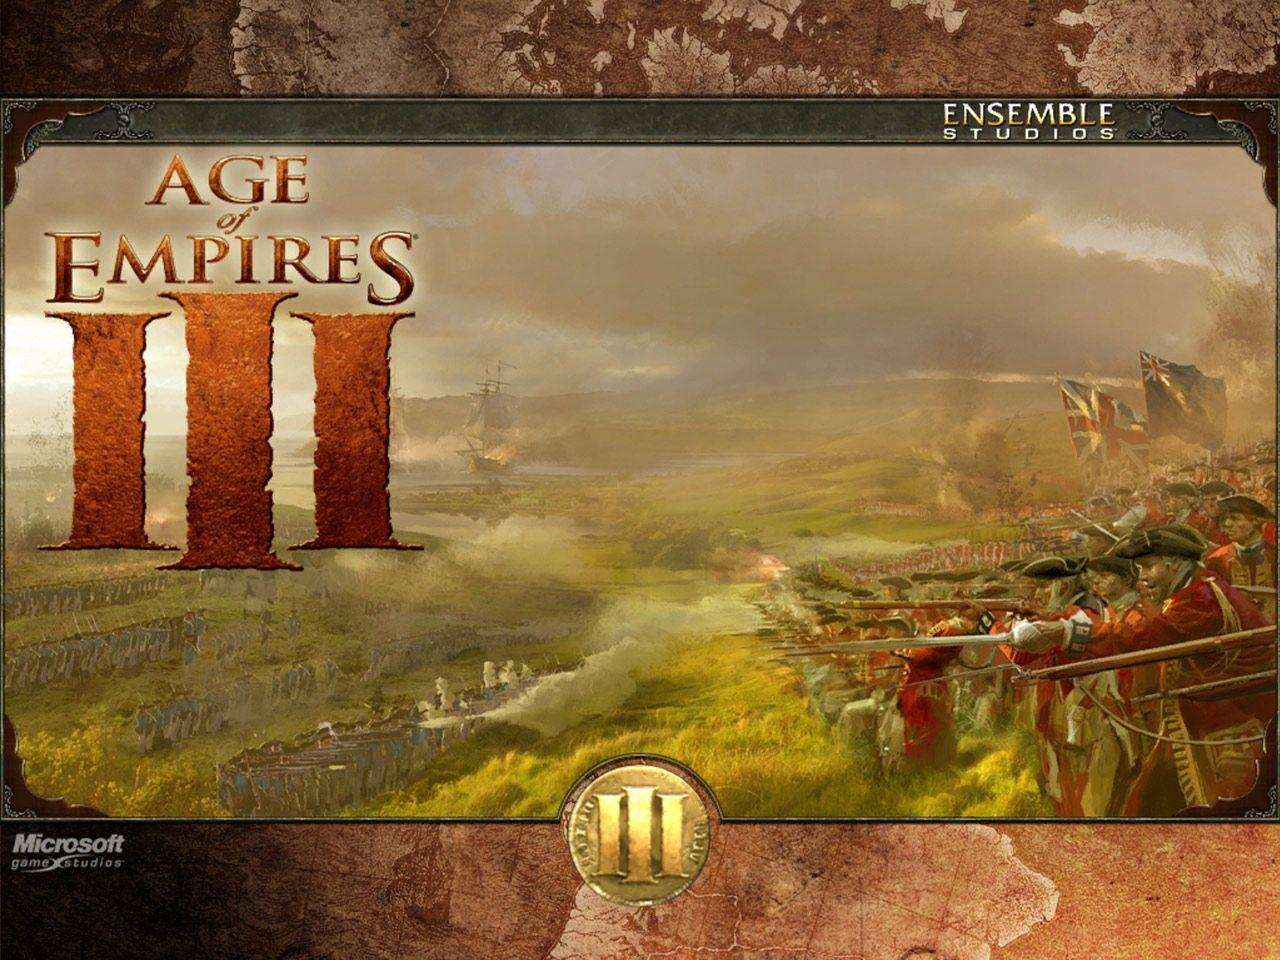 Age of Empires II < Games < Entertainment < Desktop Wallpapers